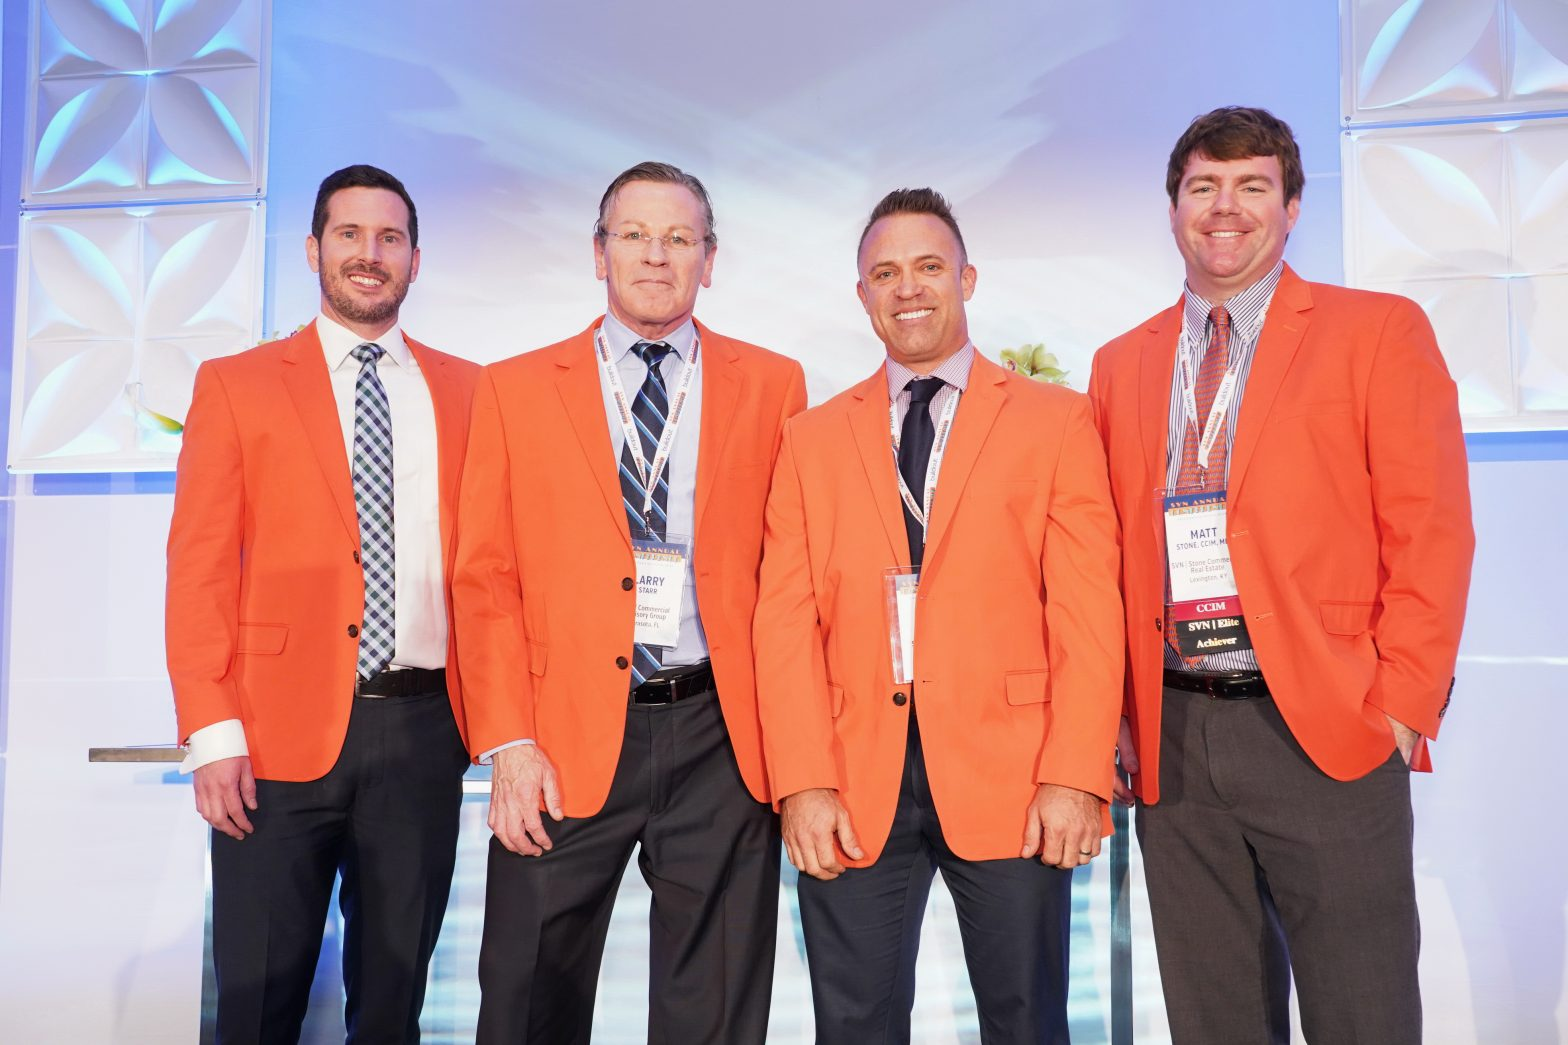 SVN Specialty Awards Presented at 2019 Annual Conference